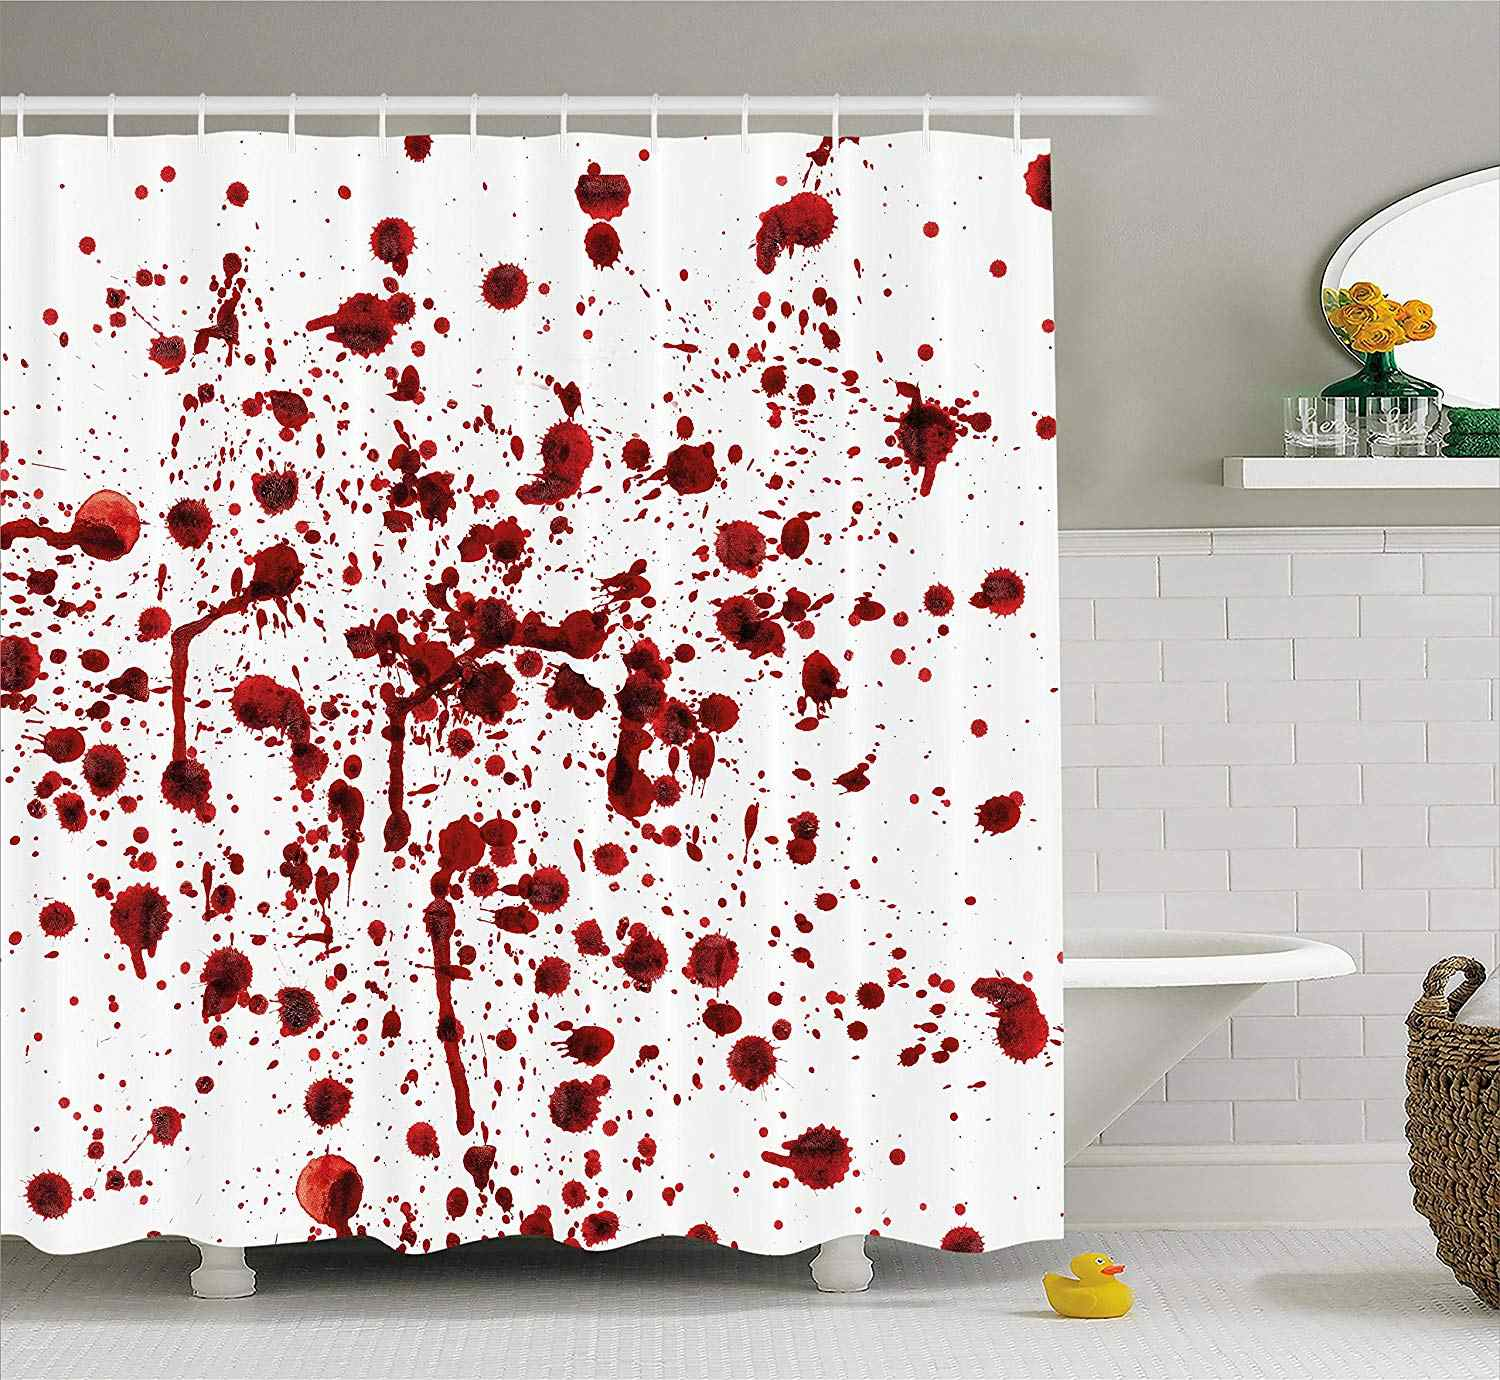 Bloody Shower Curtain Splashes of Blood Bloodstain Horror Scary Zombie Halloween Themed Print Fabric Bathroom Decor with Hooks